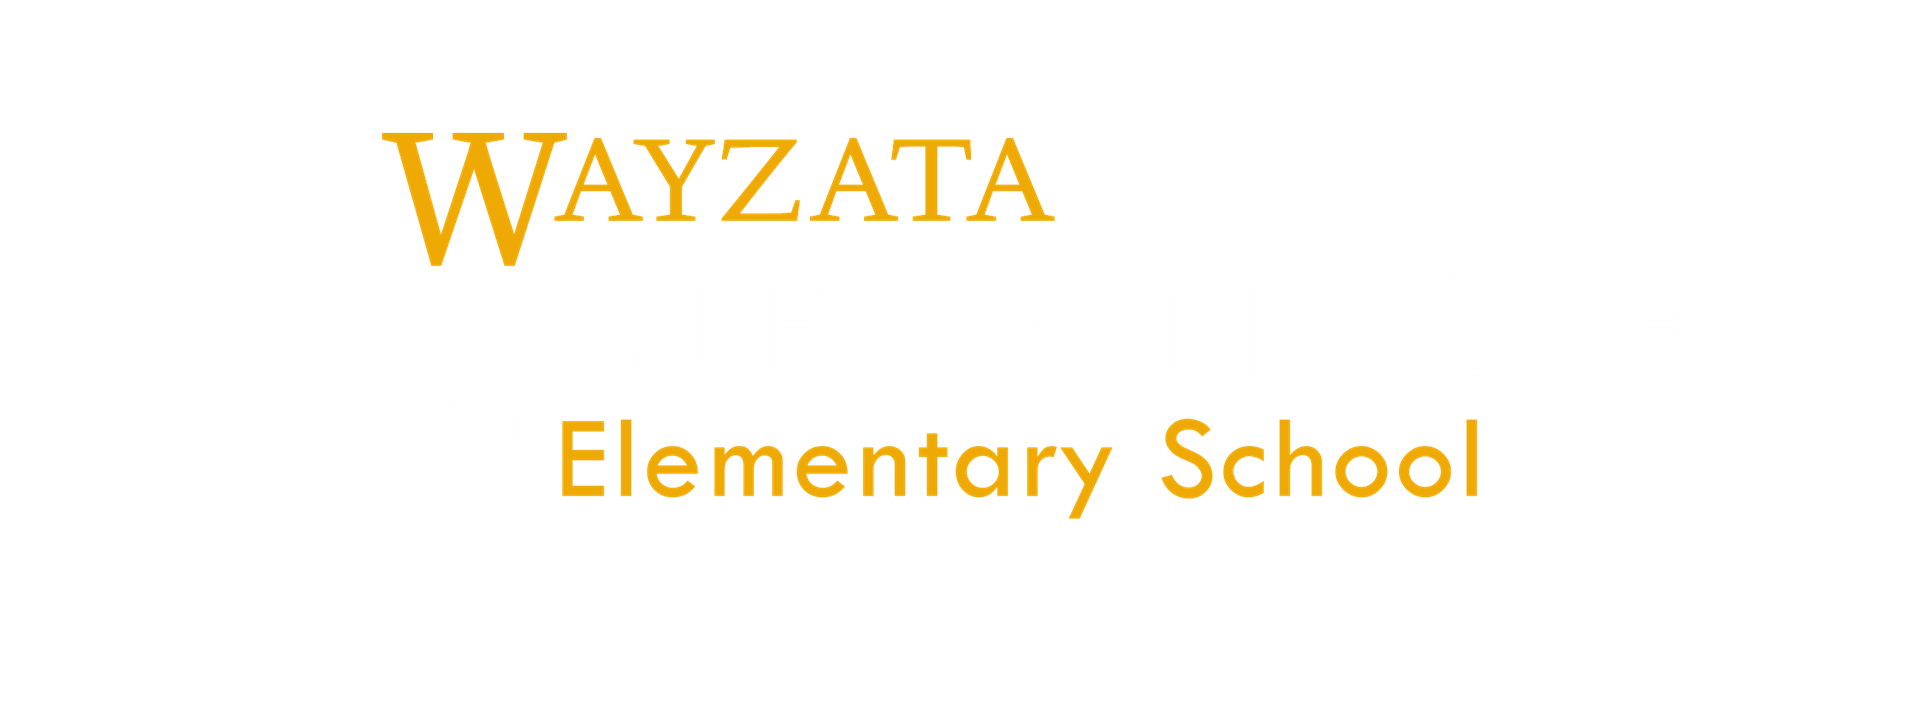 Gleason Lake Elementary School